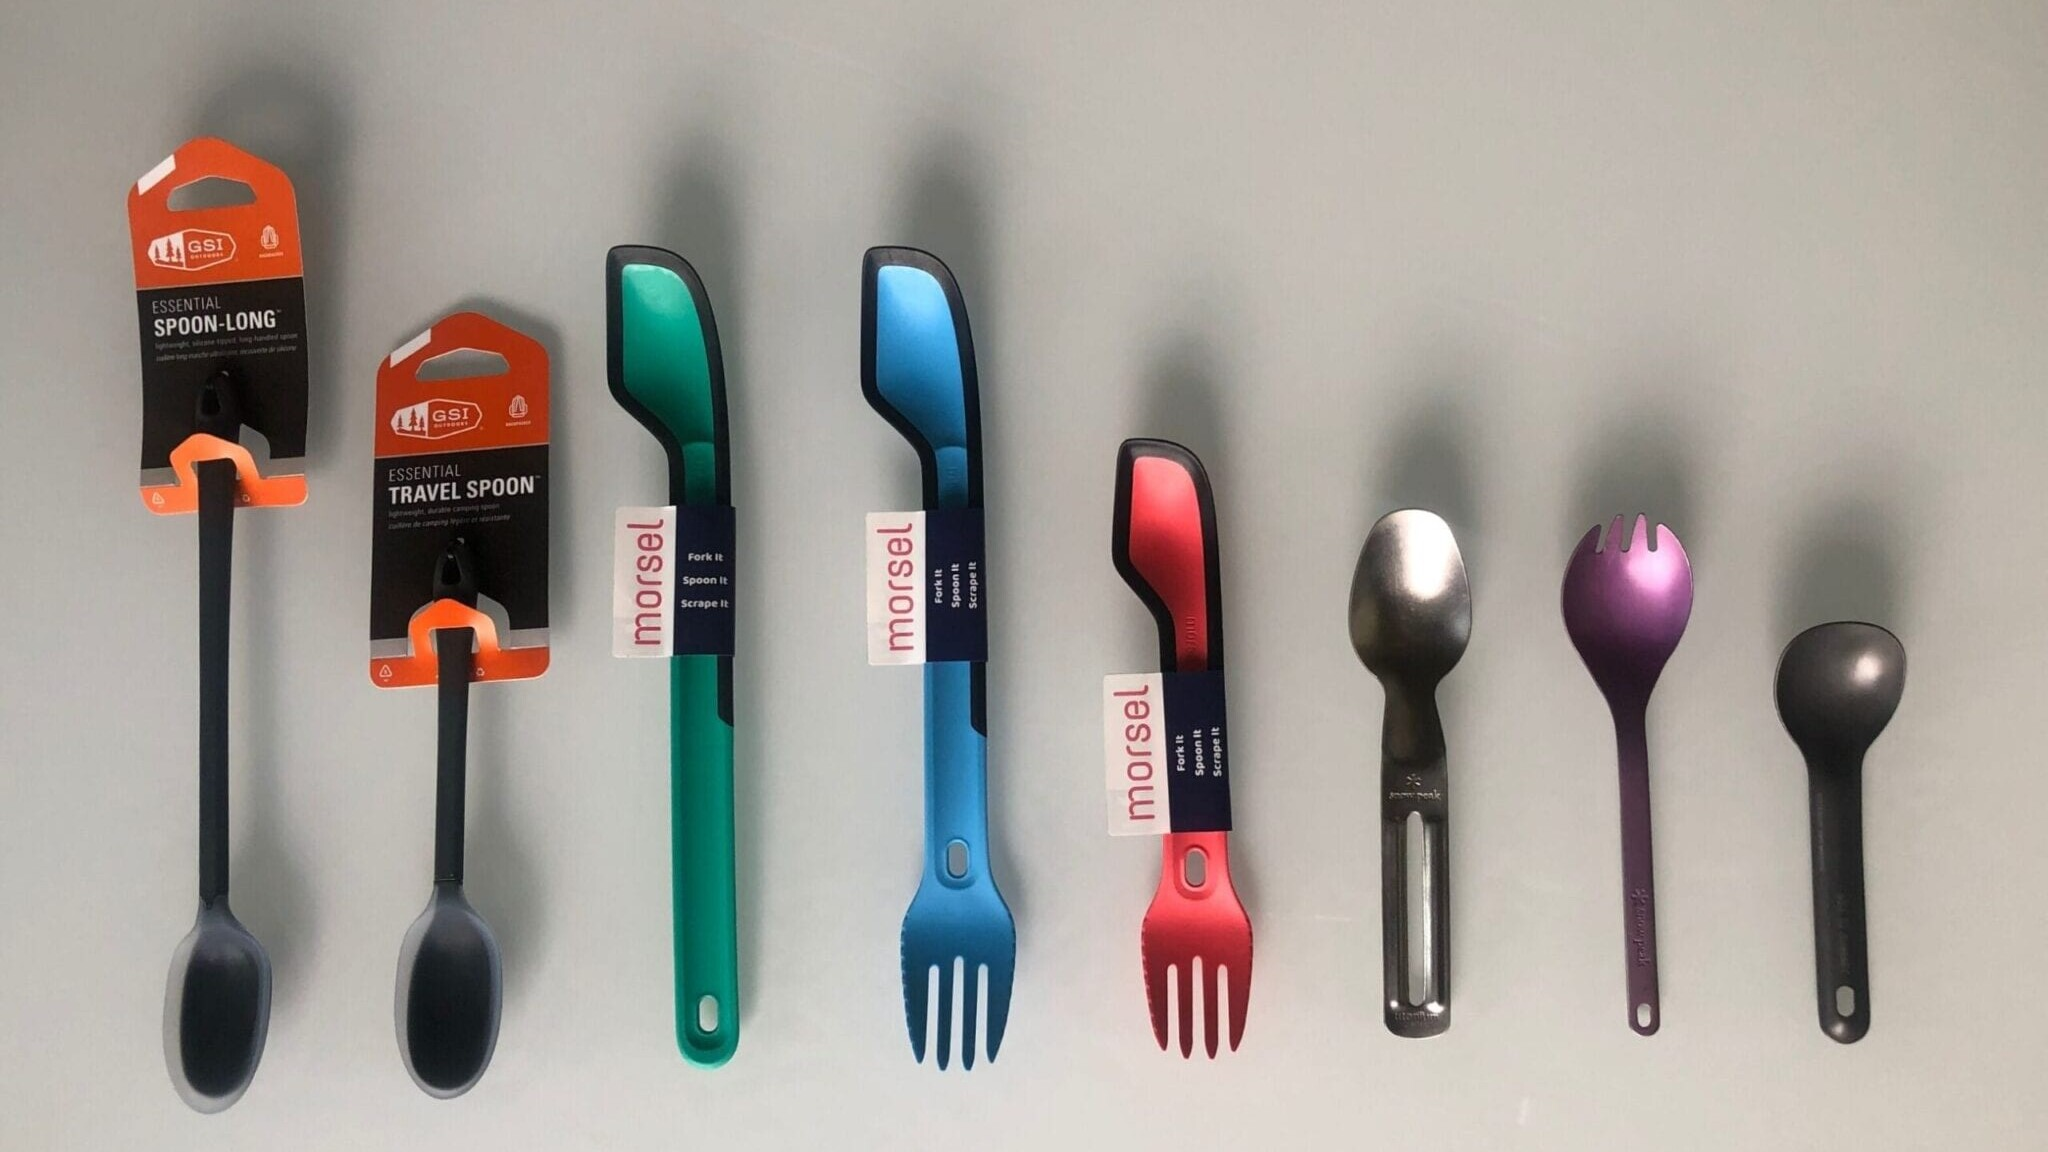 A variety of backpacking spoons in a line on a table.